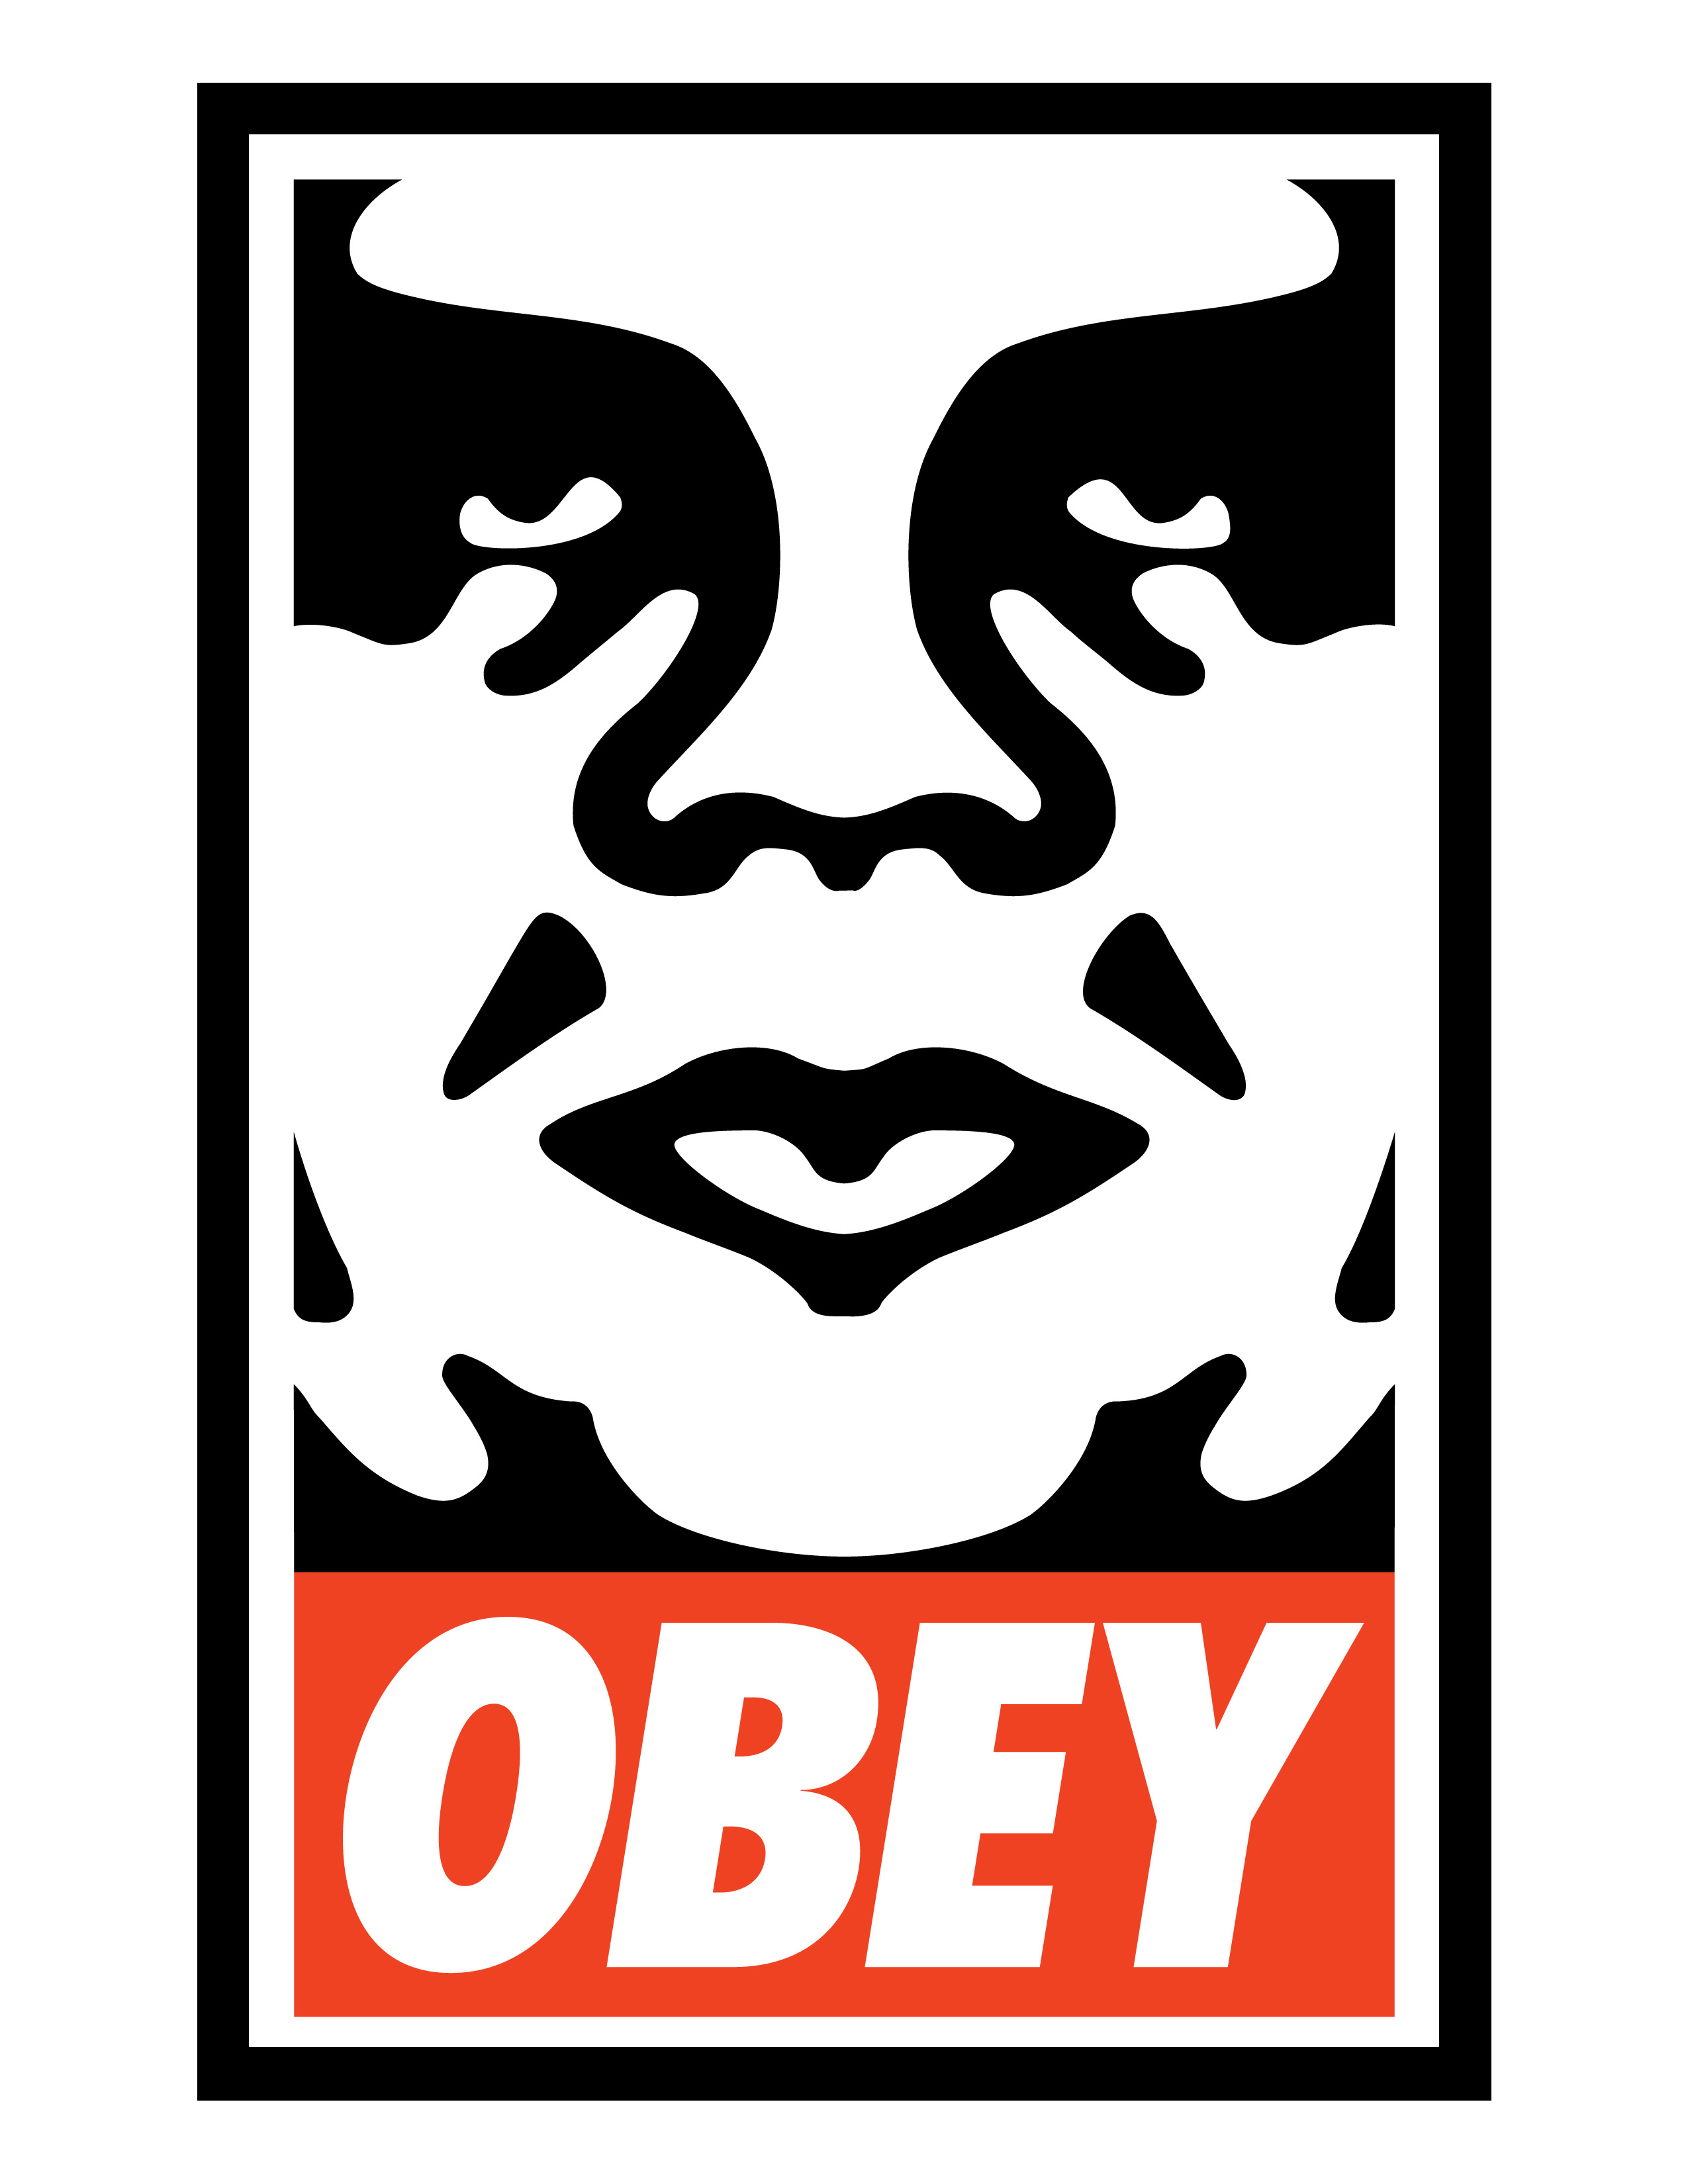 Obey Png Free Obey Png Transparent Images 17271 Pngio